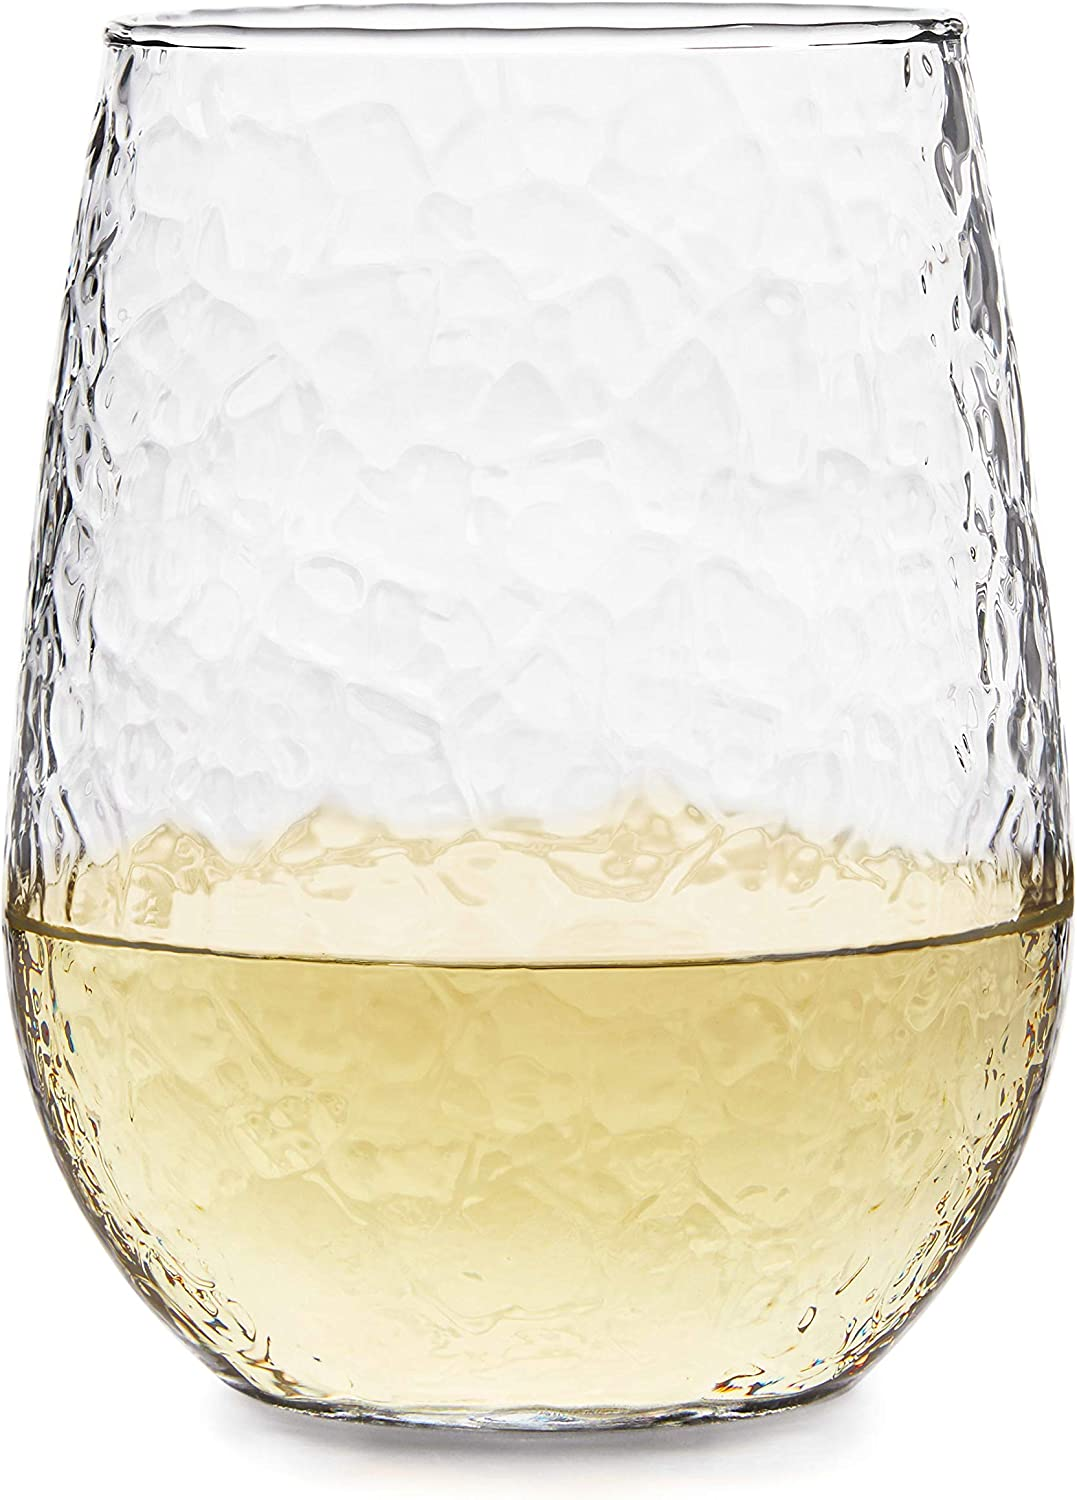 Libbey Stemless All-Purpose Wine Glasses, Set of 8, Hammered Full (17 oz)